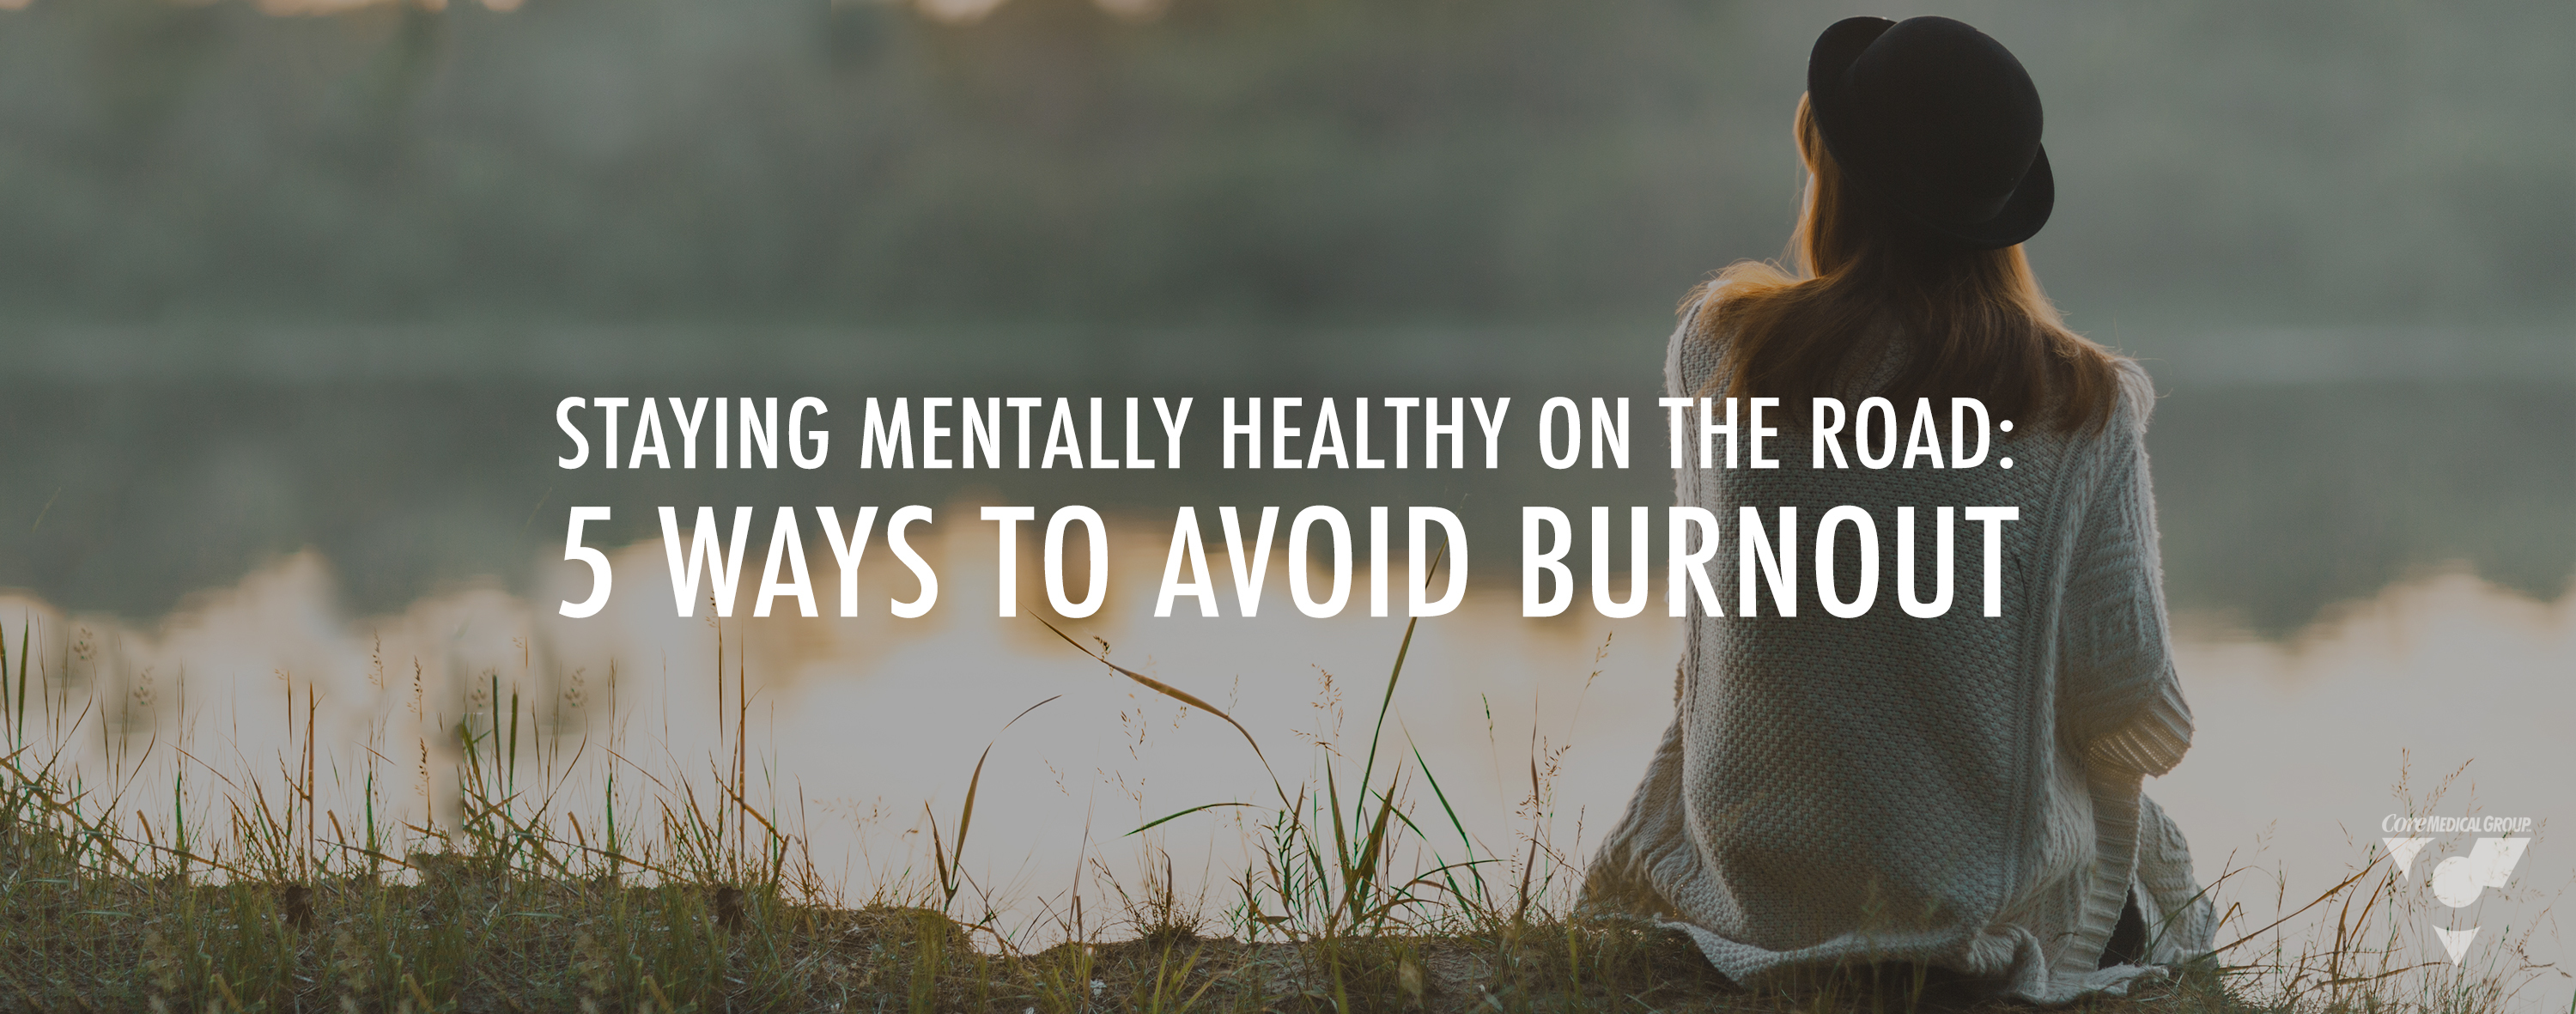 Travel Nursing Staying Mentally Healthy on the Road Five Ways to Avoid Burnout